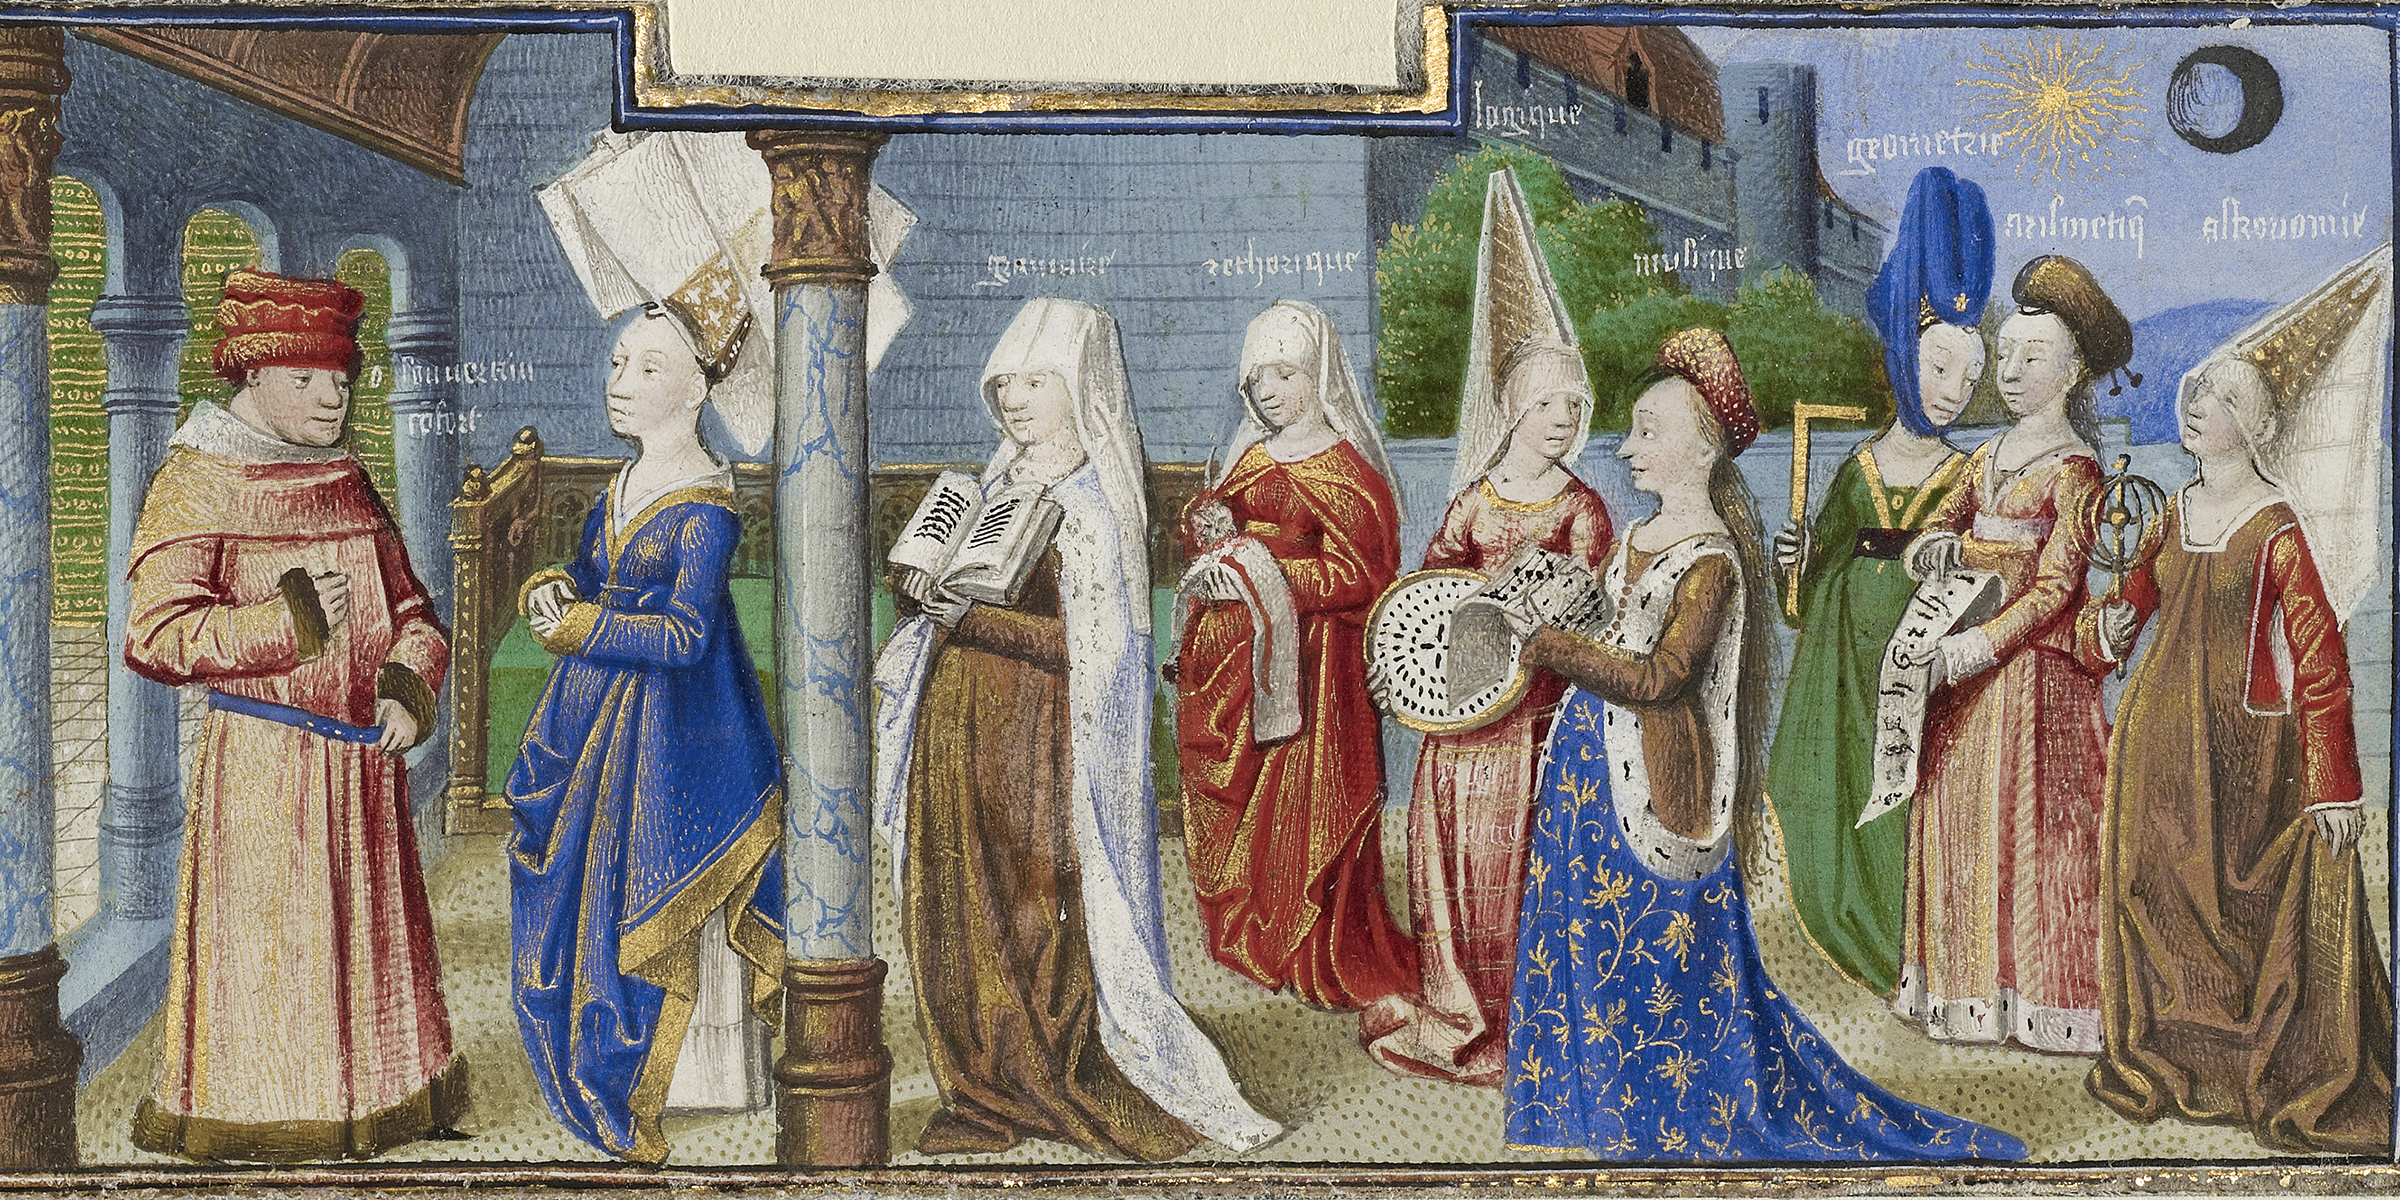 Philosophy Presenting the Seven Liberal Arts to Boethius, by Coëtivy Master, c. 1460–70. Digital image courtesy of the Getty's Open Content Program.